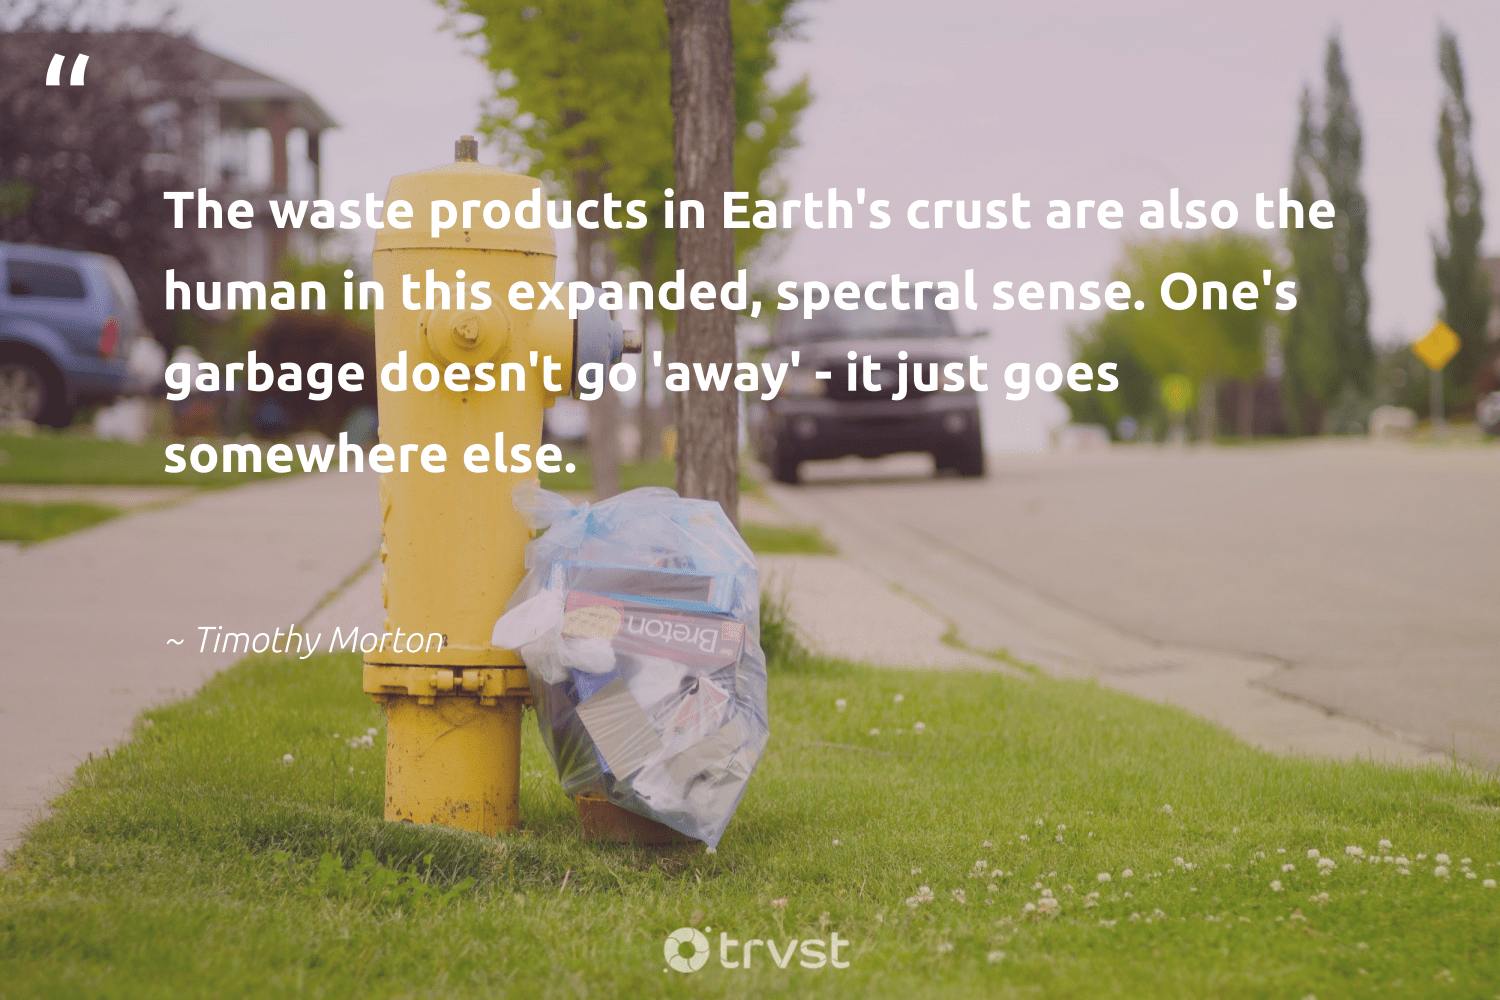 """""""The waste products in Earth's crust are also the human in this expanded, spectral sense. One's garbage doesn't go 'away' - it just goes somewhere else.""""  - Timothy Morton #trvst #quotes #waste #garbage #ecoconscious #gogreen #greenliving #beinspired #wecandobetter #planetearthfirst #sustainableliving #bethechange"""